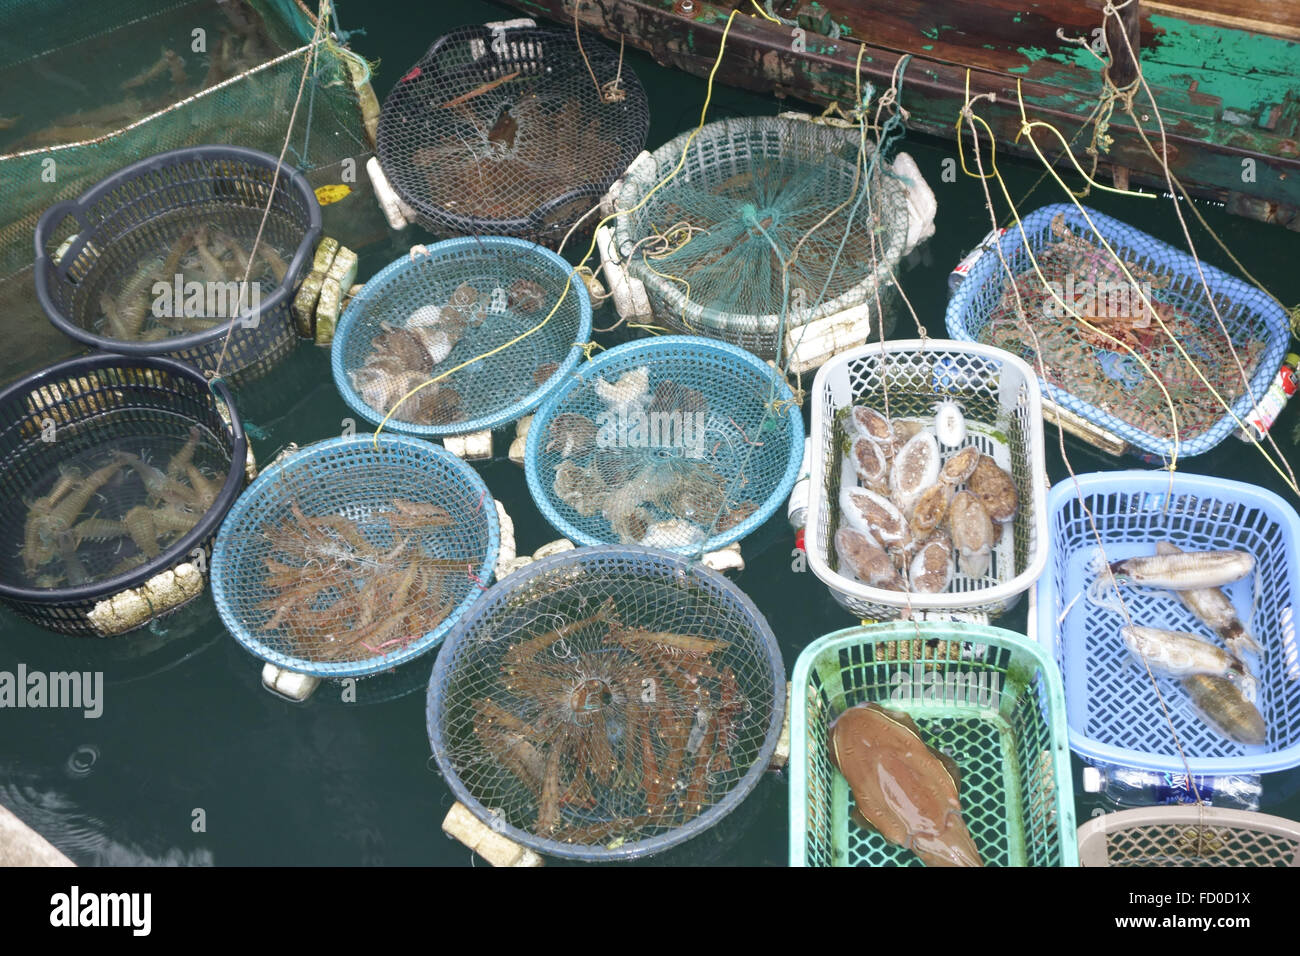 Baskets holding different types of fish and shellfish for sale tethered to a small boat in Halong Bay, Vietnam - Stock Image